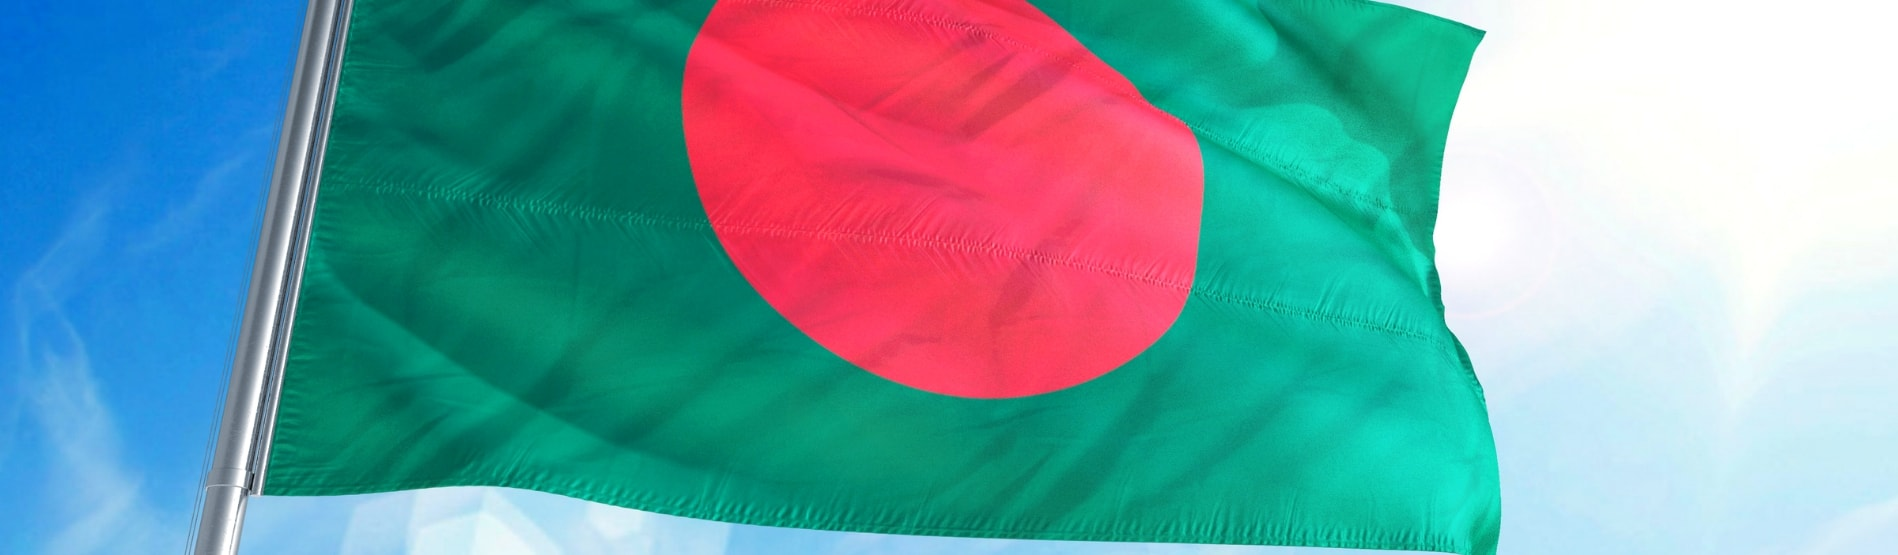 The flag of Bangladesh waving in the breeze.